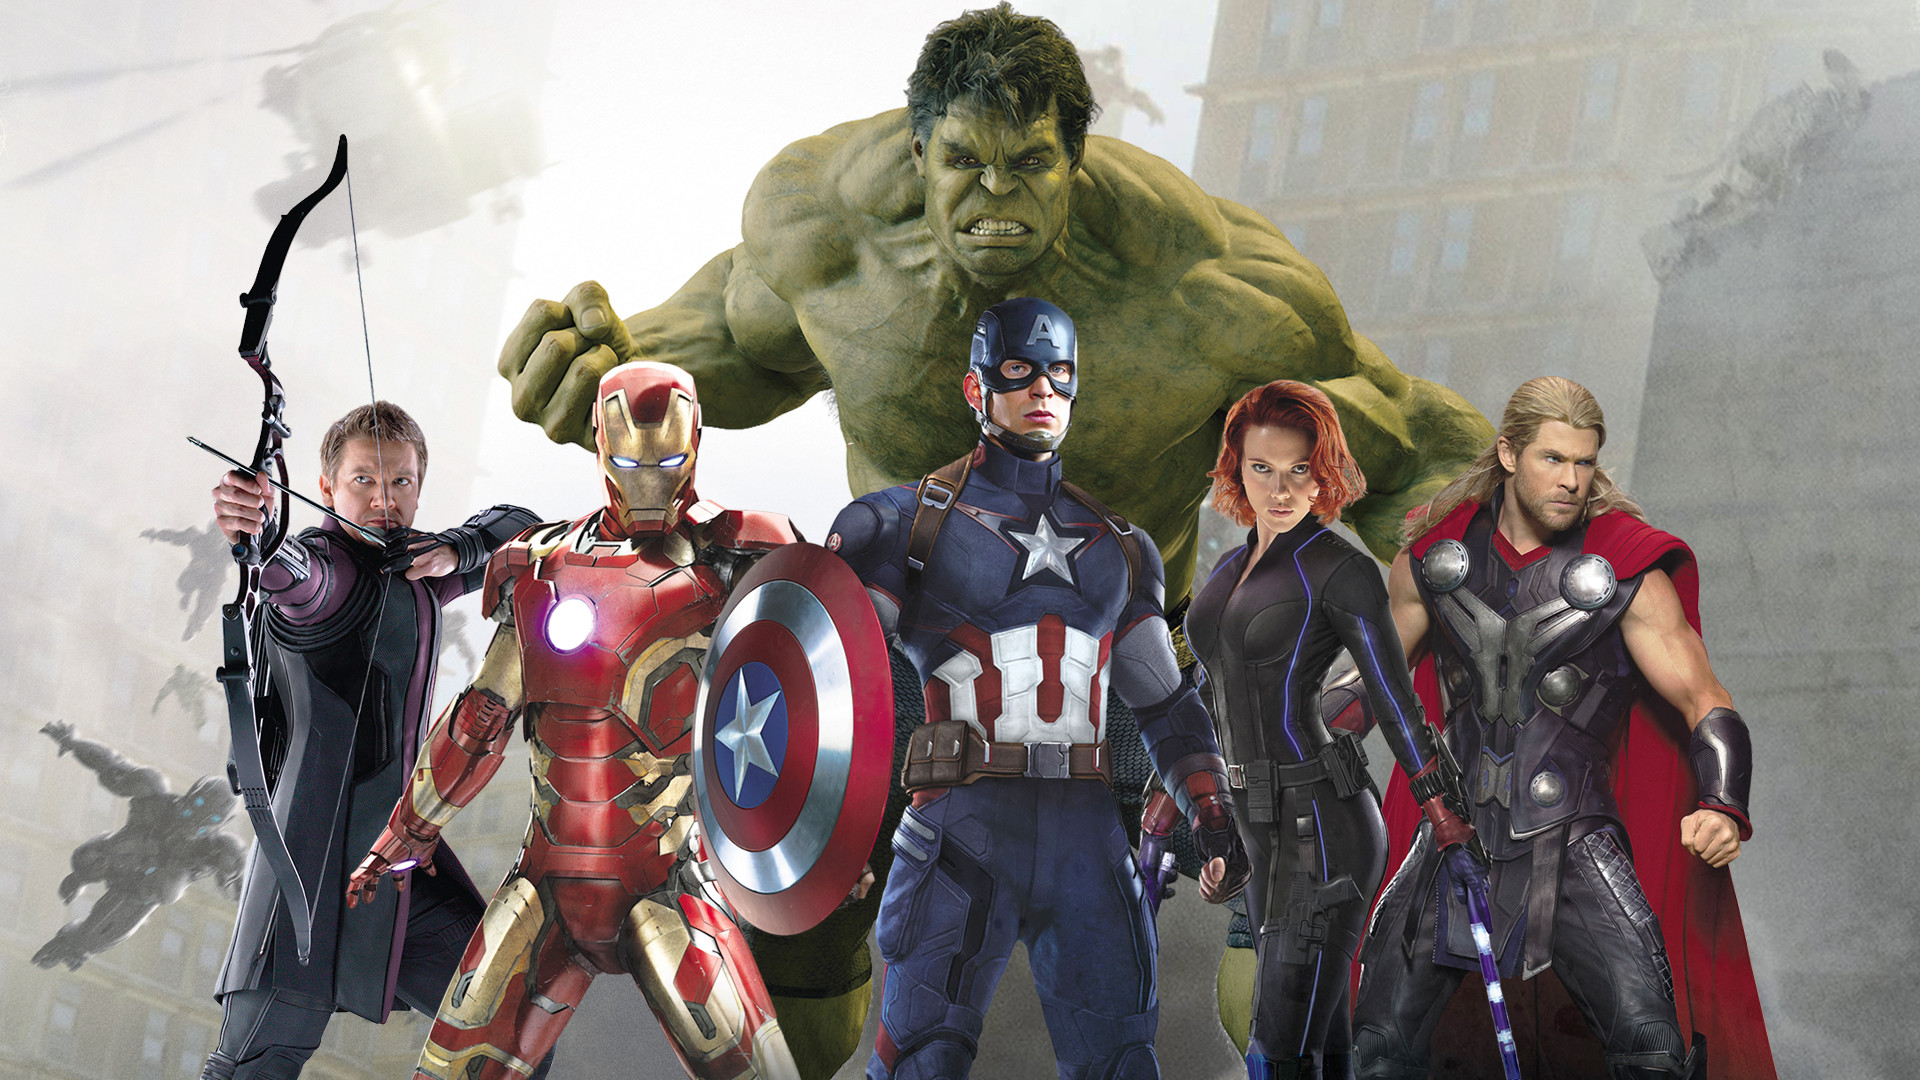 Captain America Avengers Age of Ultron wallpapers (51 Wallpapers)